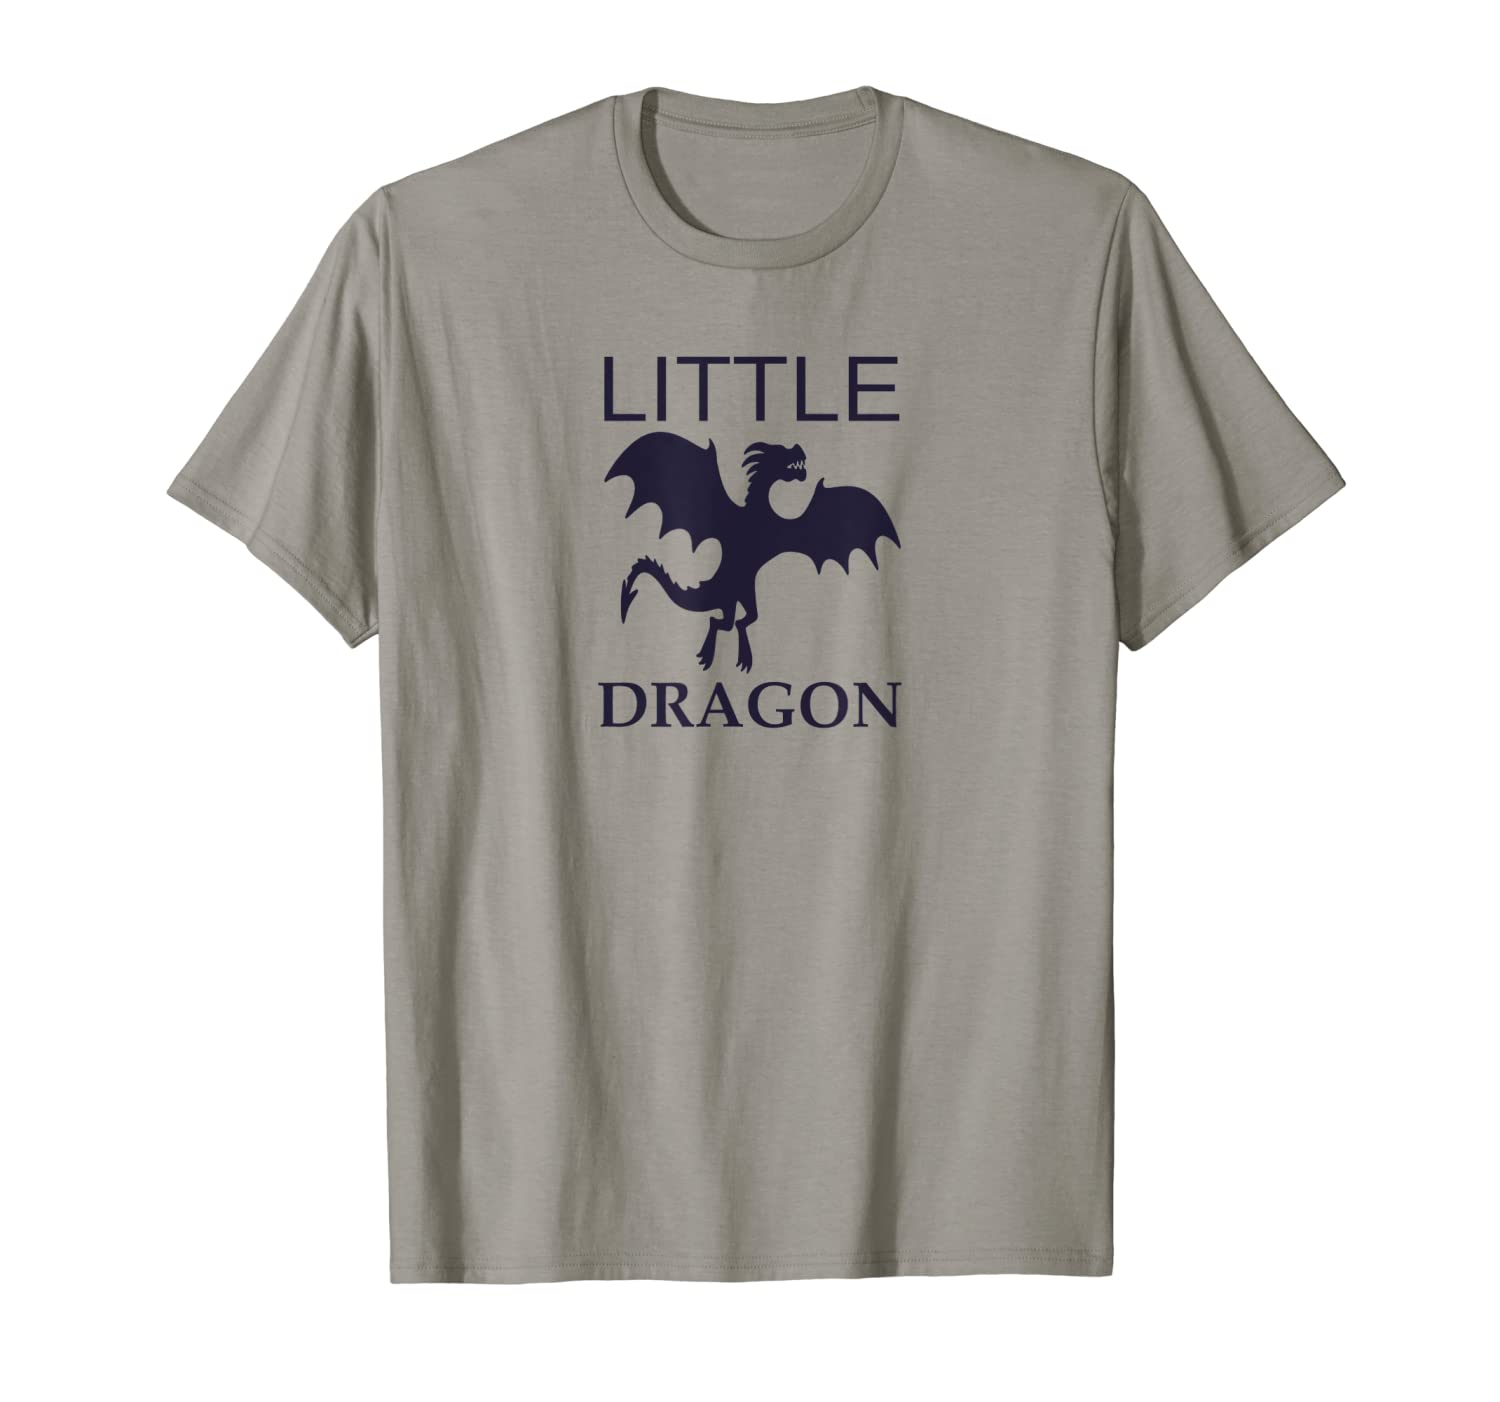 bee627a5c Amazon.com: Little Dragon T-Shirt Cool Funny Toddler Boys Girls Gift Tee:  Clothing